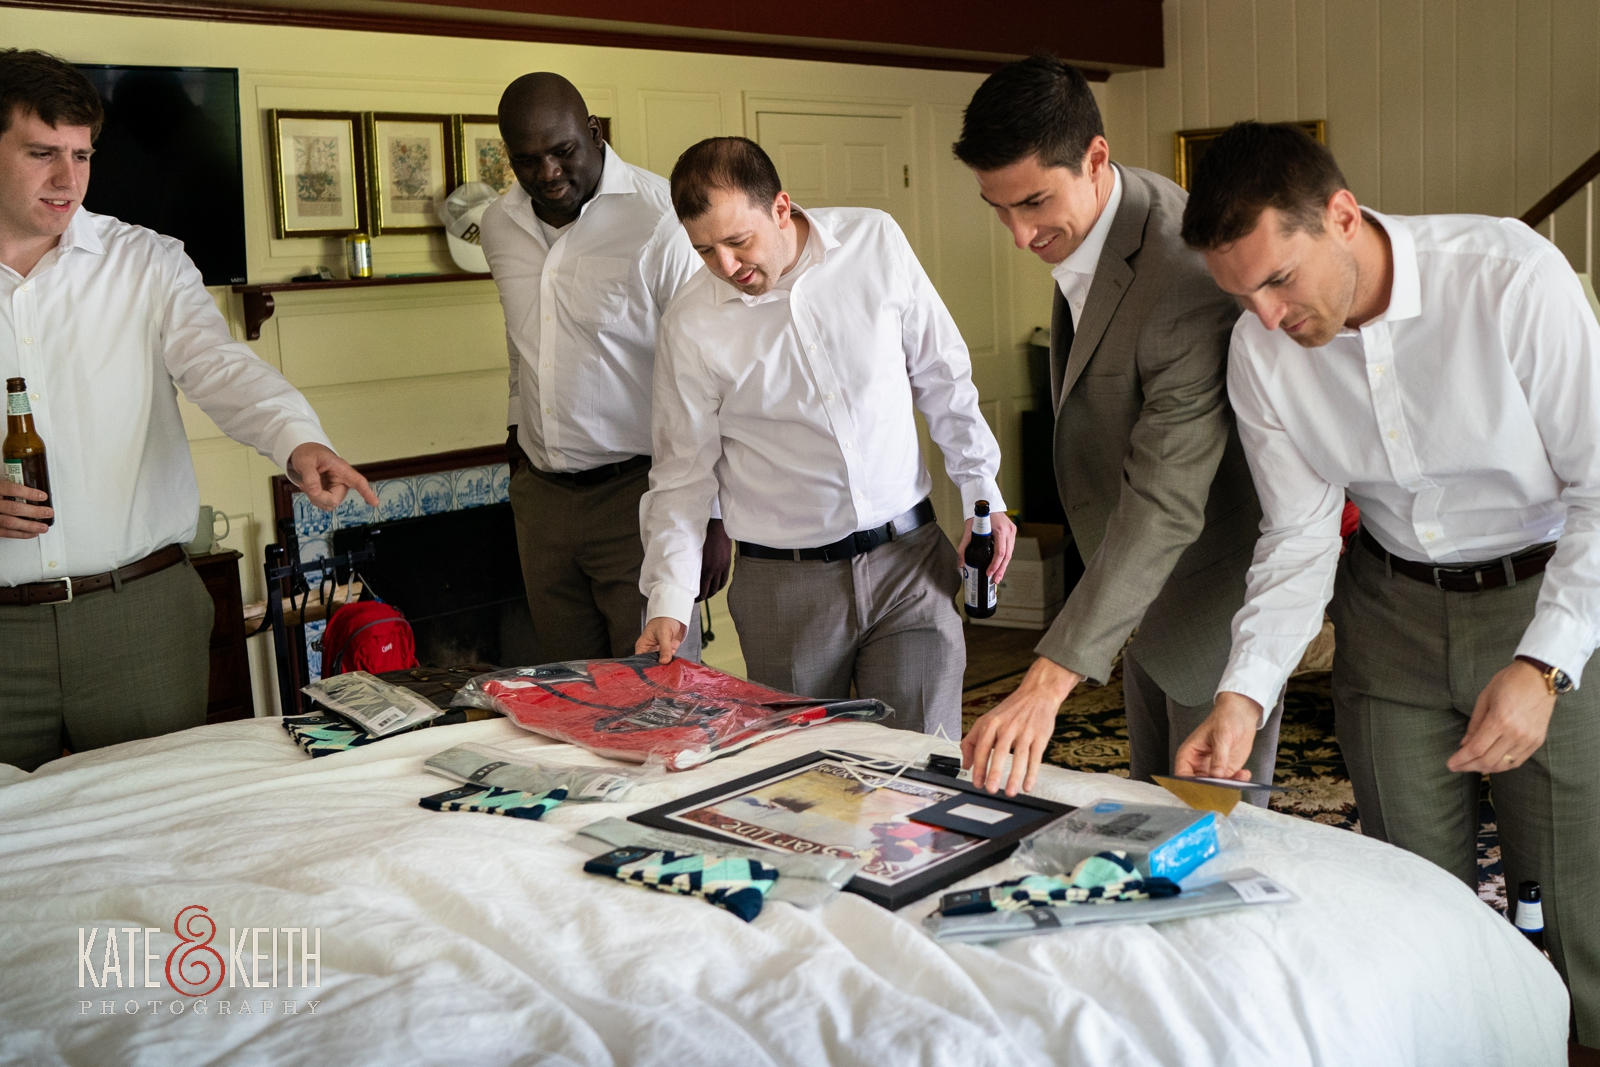 groomsmen gift ideas, meaningful groomsmen gifts